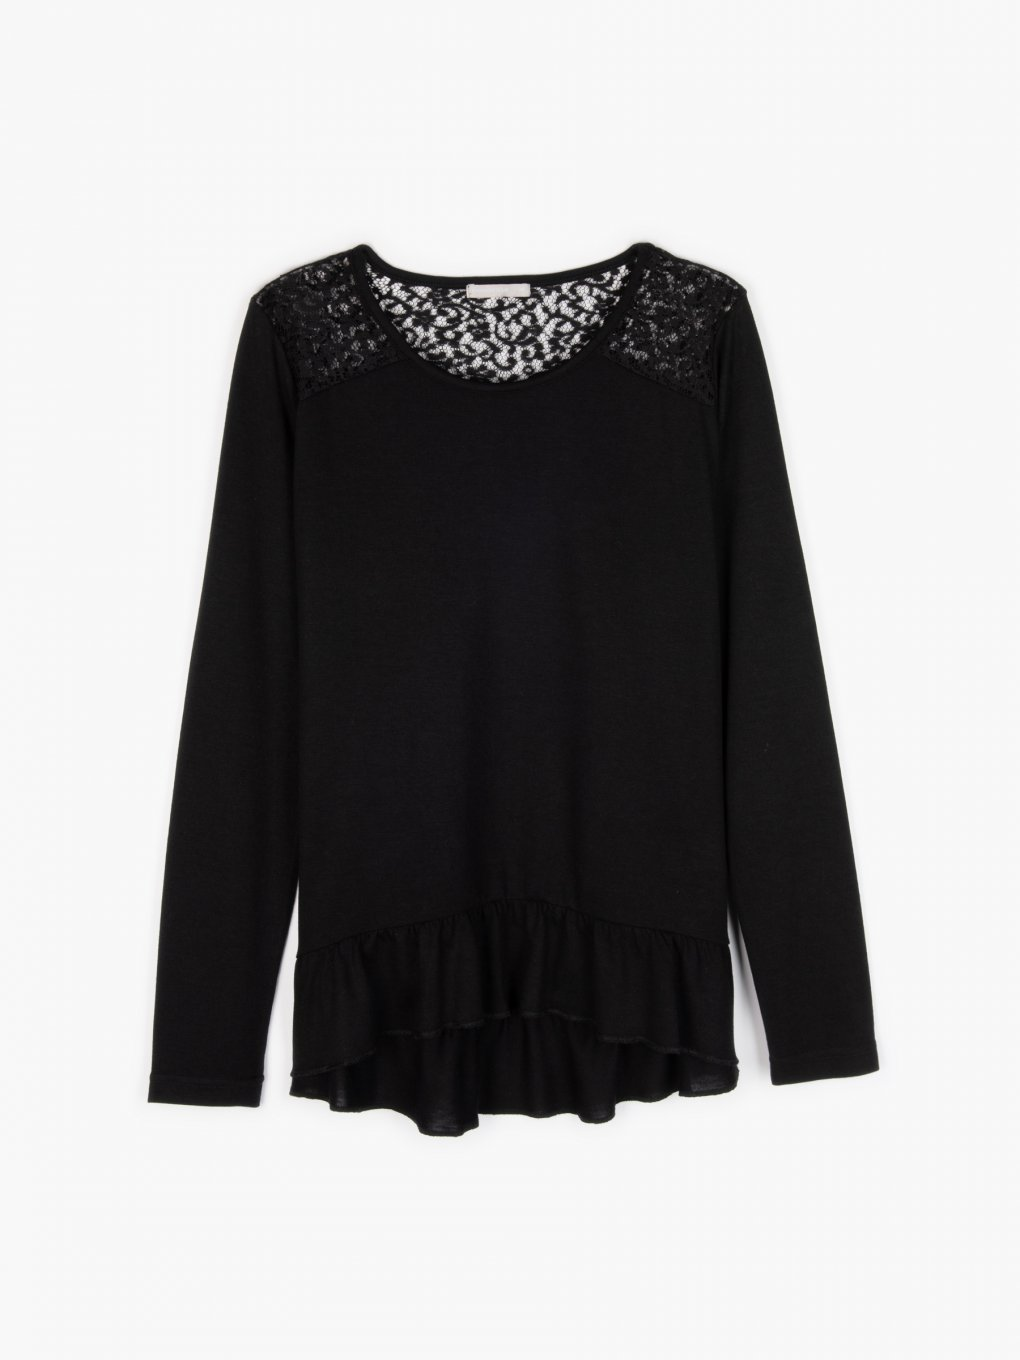 Ruffle top with lace details